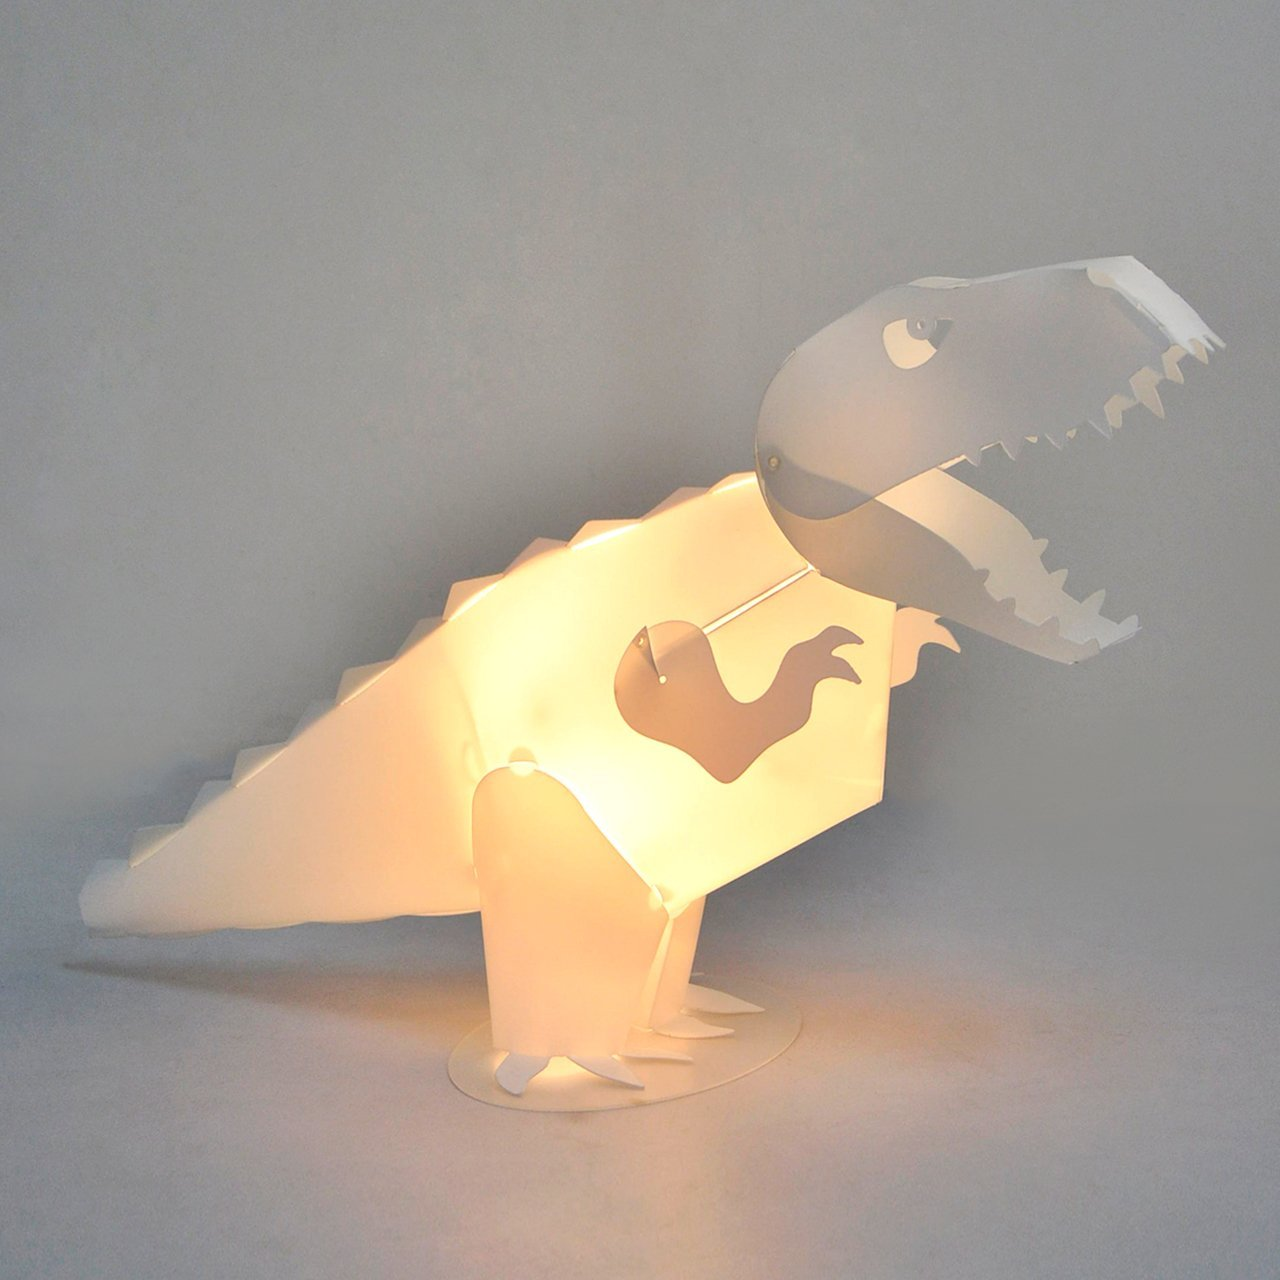 Lumi Co Designer T-Rex Dinosaur LED Lamp